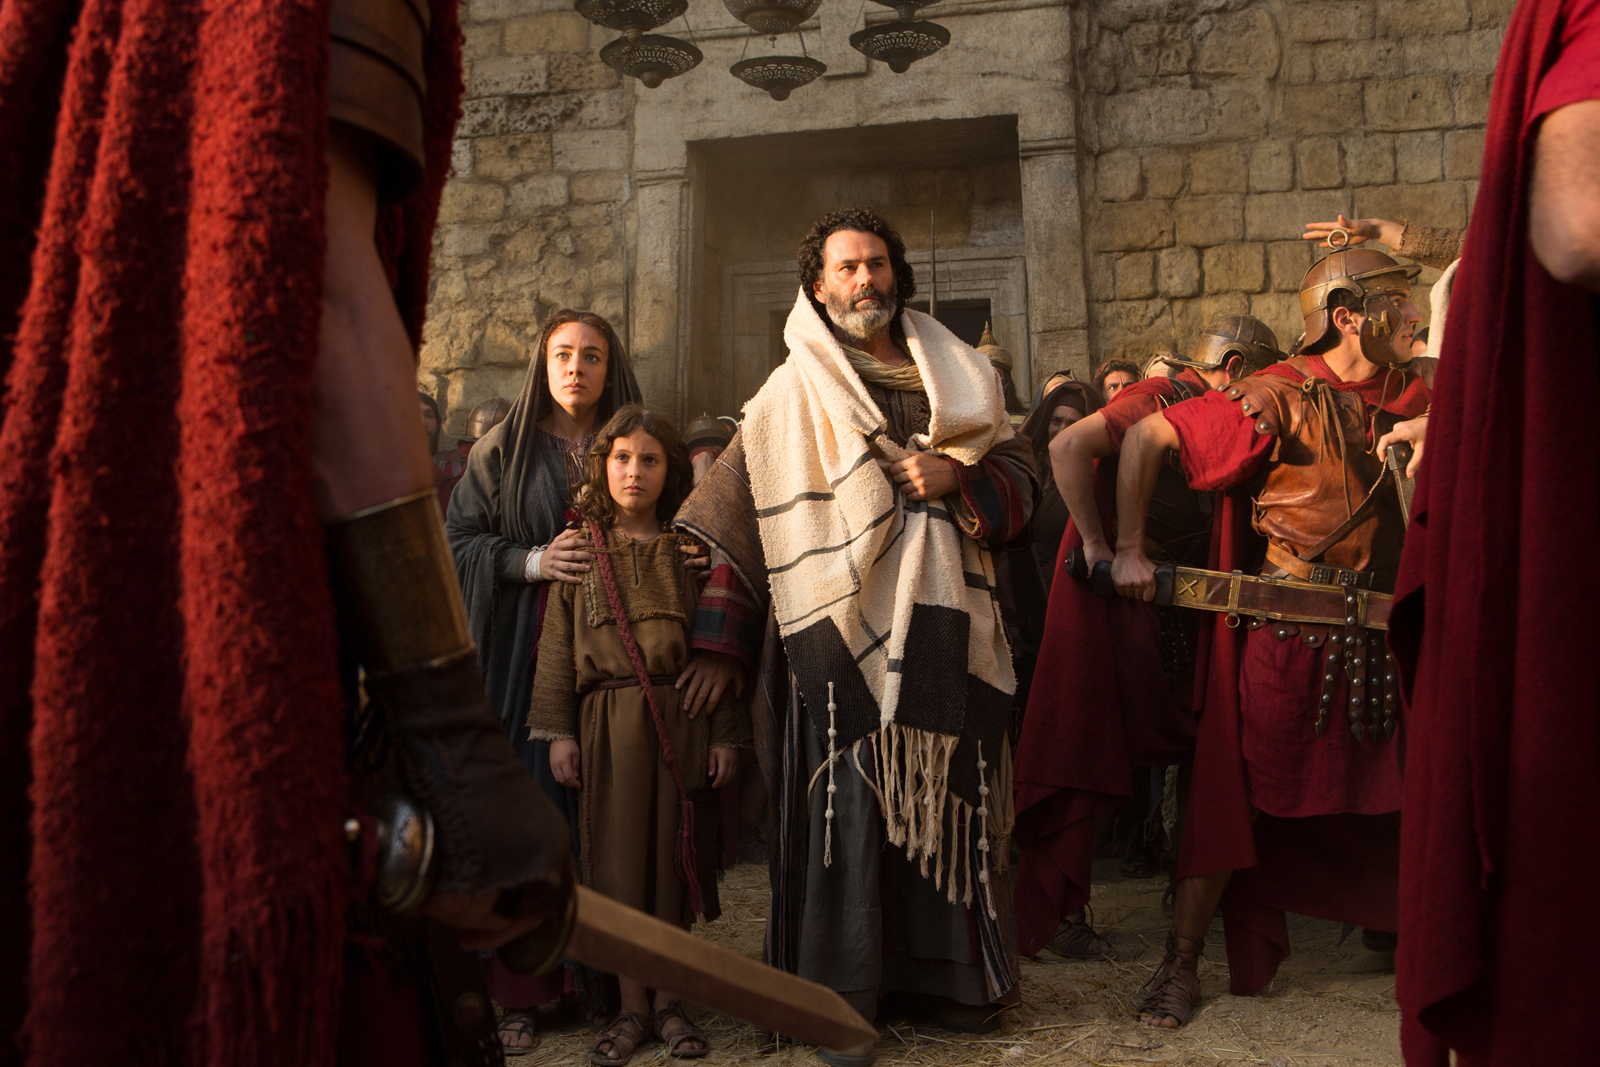 a scene from The Young Messiah